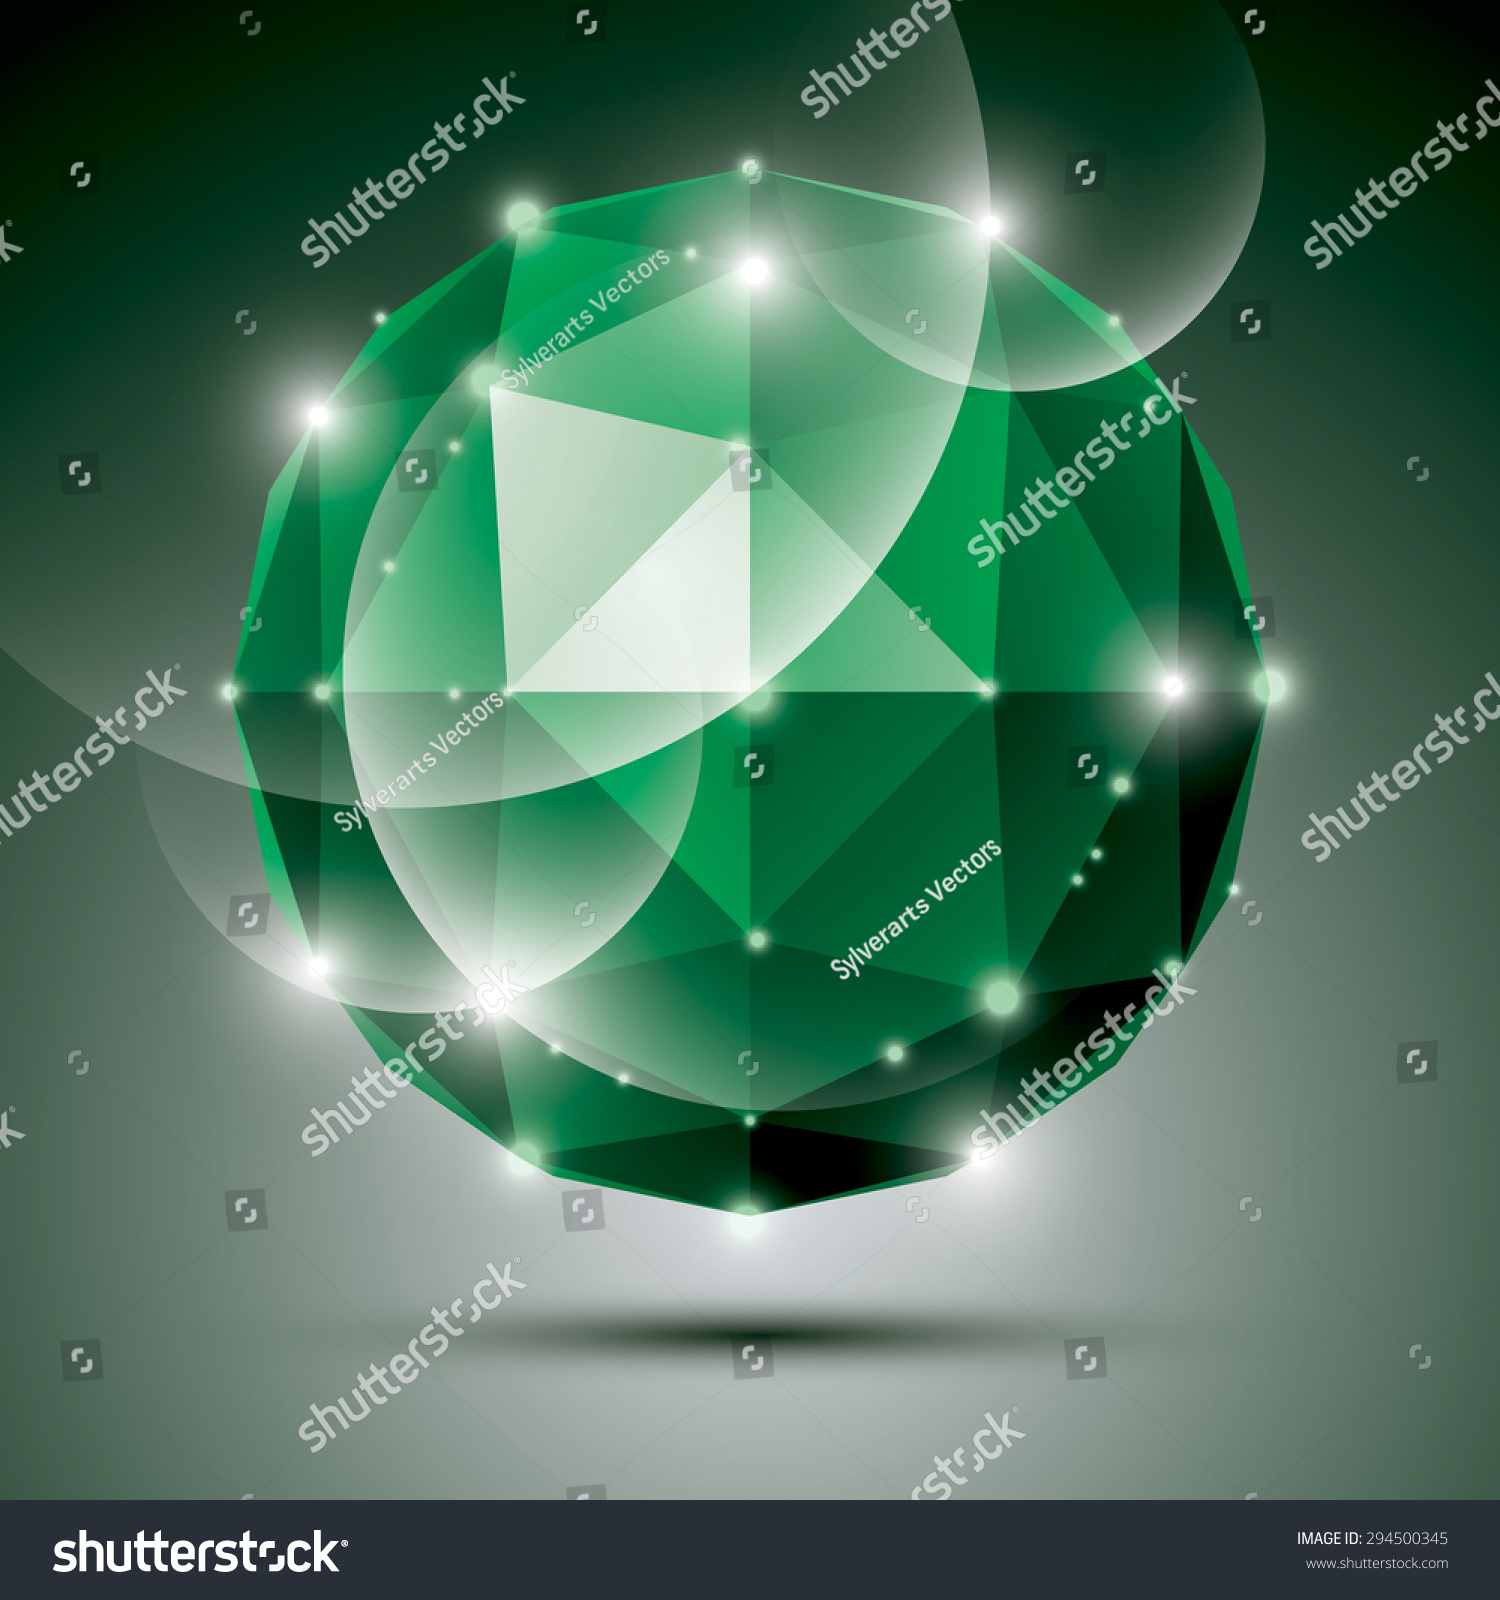 engraving stone depositphotos emerald color label gem illustration precious poster stock vintage vector